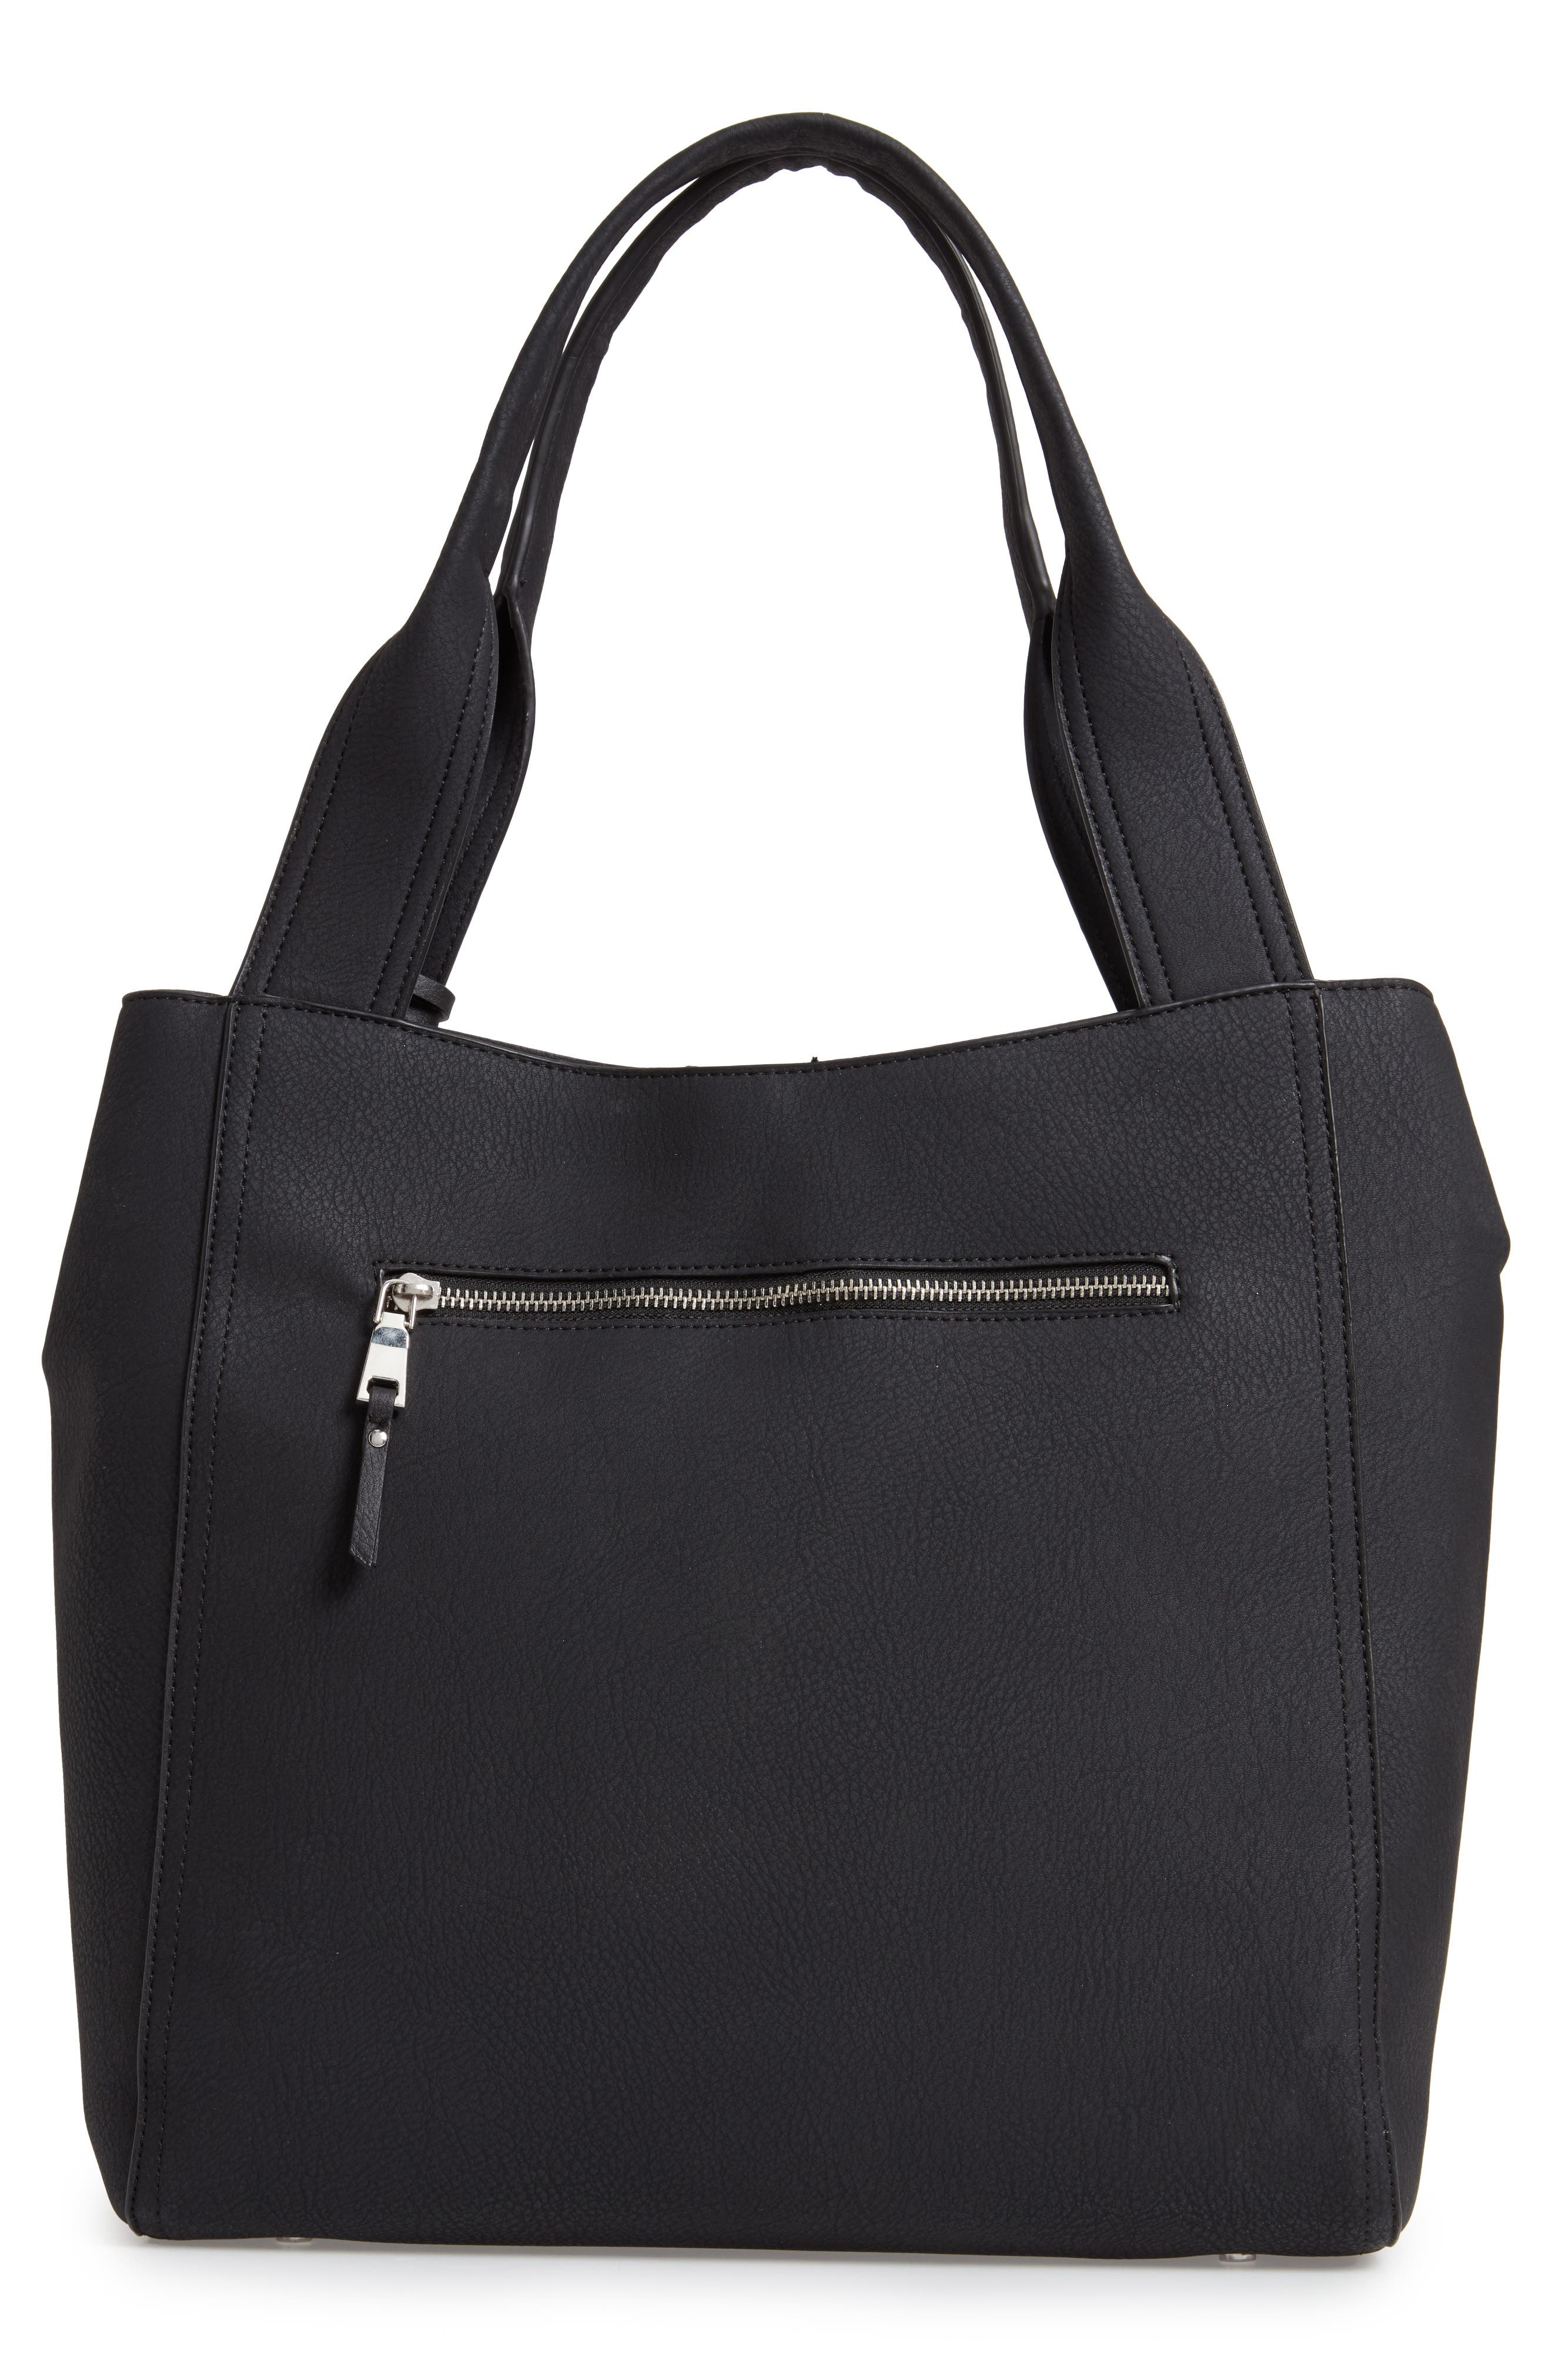 SOLE SOCIETY, Valah Faux Leather Tote, Alternate thumbnail 4, color, BLACK